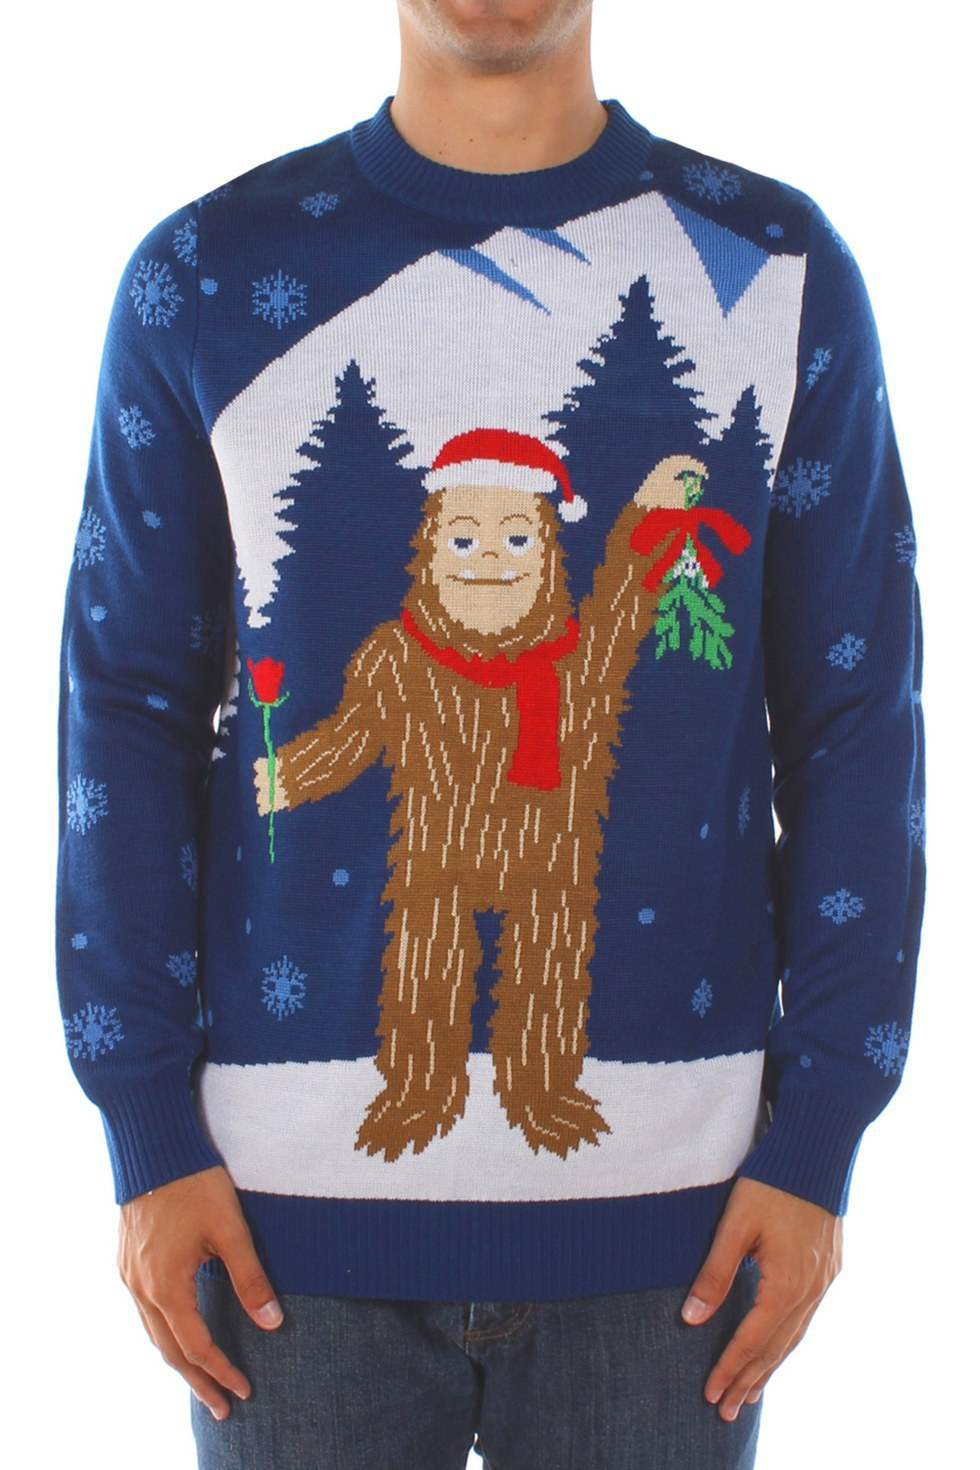 10 Best Ugly Christmas Sweaters